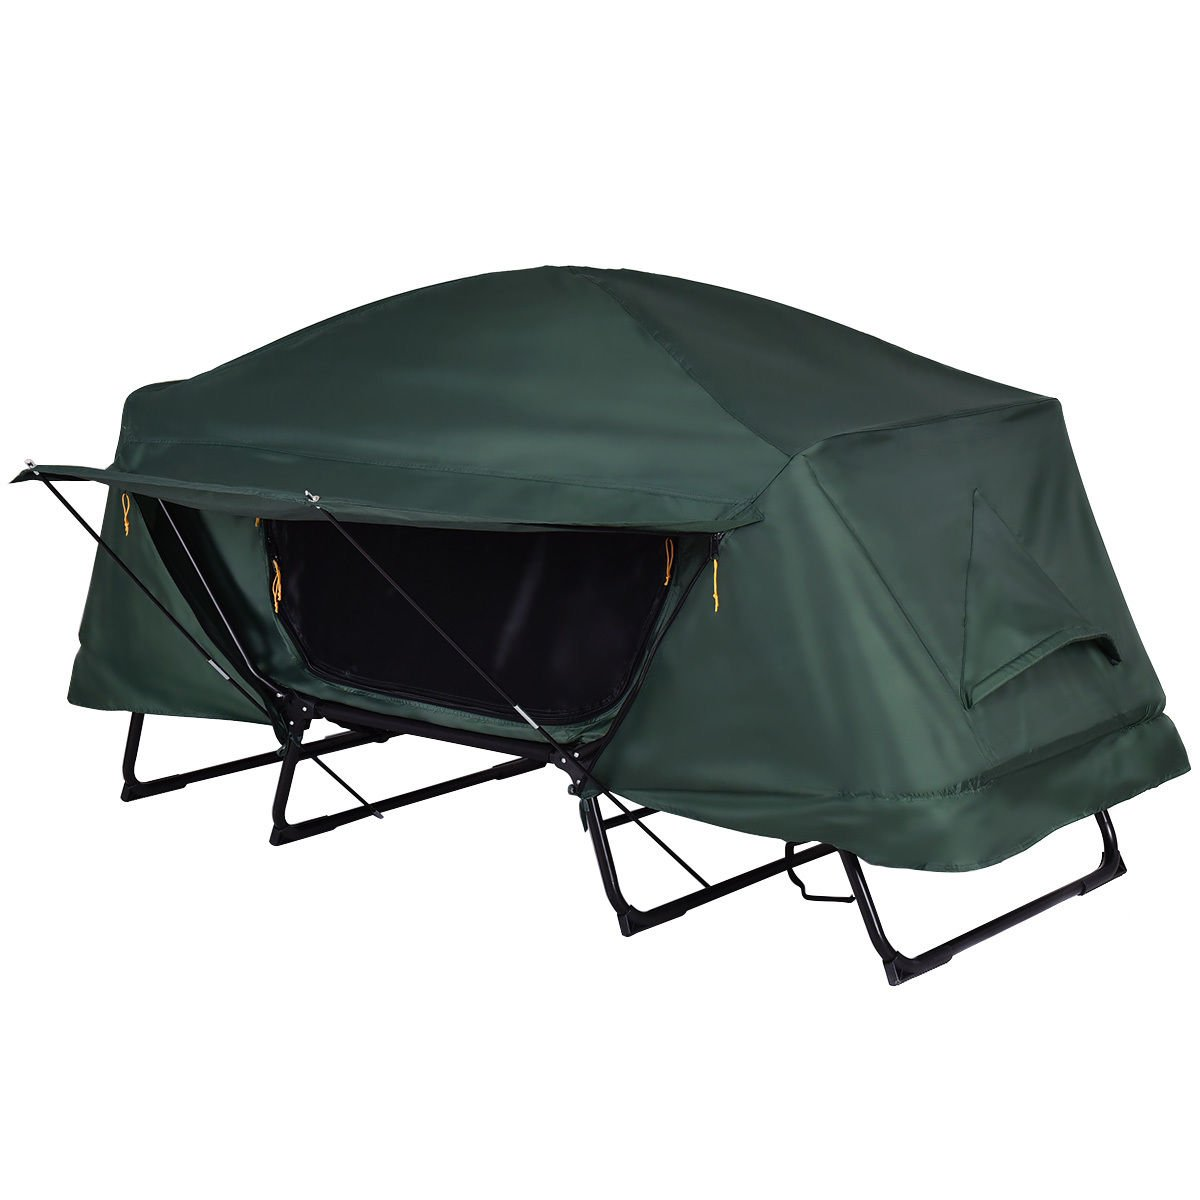 Tangkula Tent Cot Folding Waterproof 1 Person Hiking Camping Tent with Carry Bag by Tangkula (Image #5)